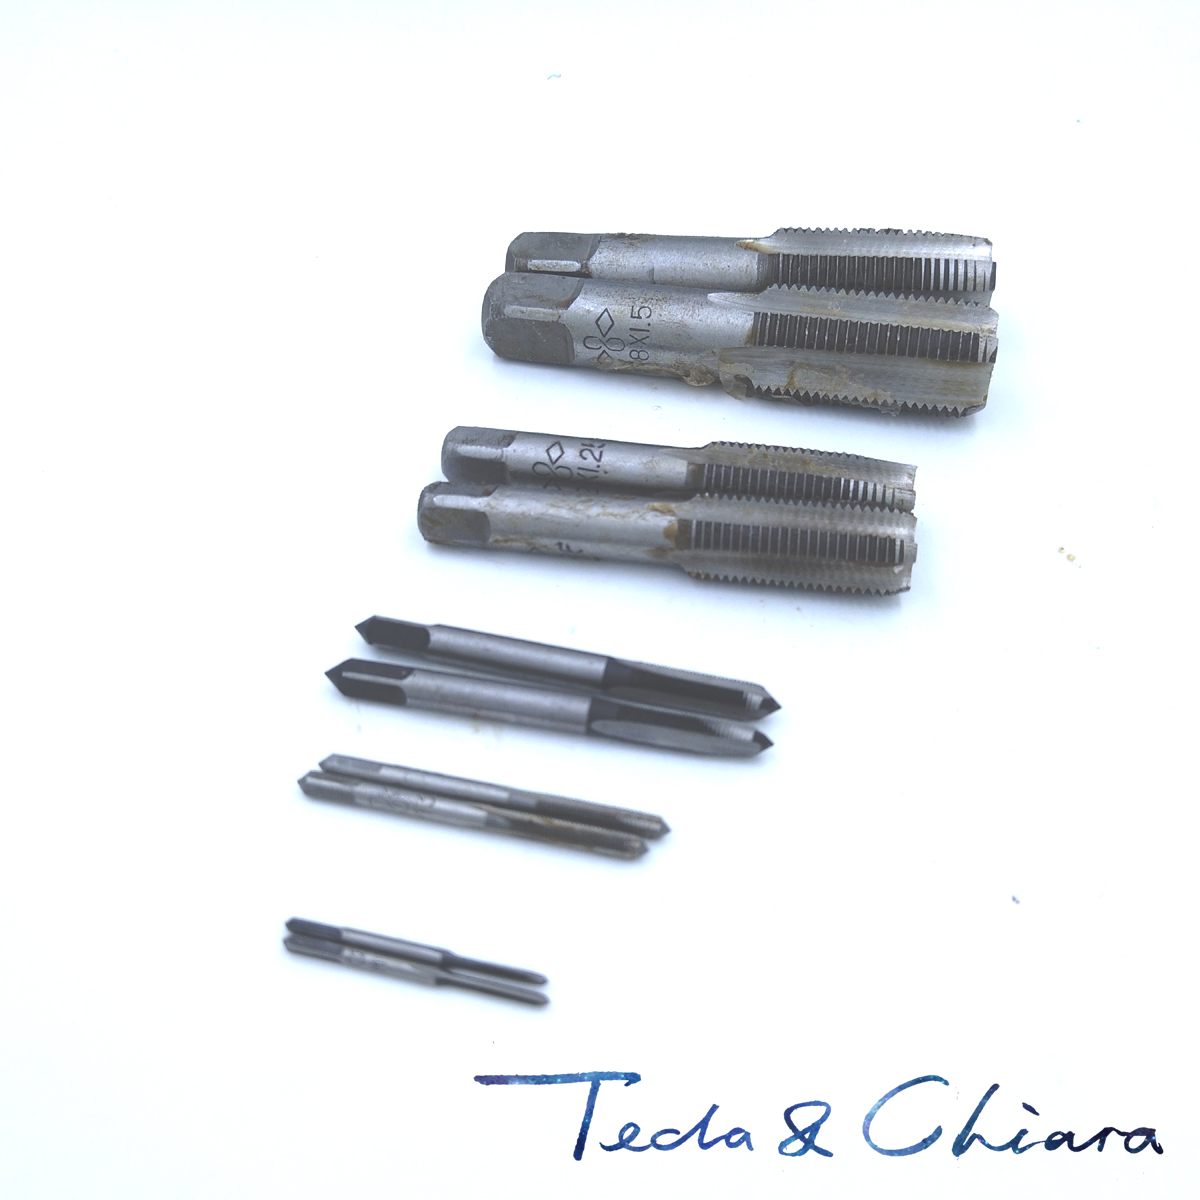 1Set M16 X 1mm 1.25mm 1.5mm 2mm RIght Hand Tap Metric Taper And Plug Pitch For Mold Machining * 1 1.25 1.5 2